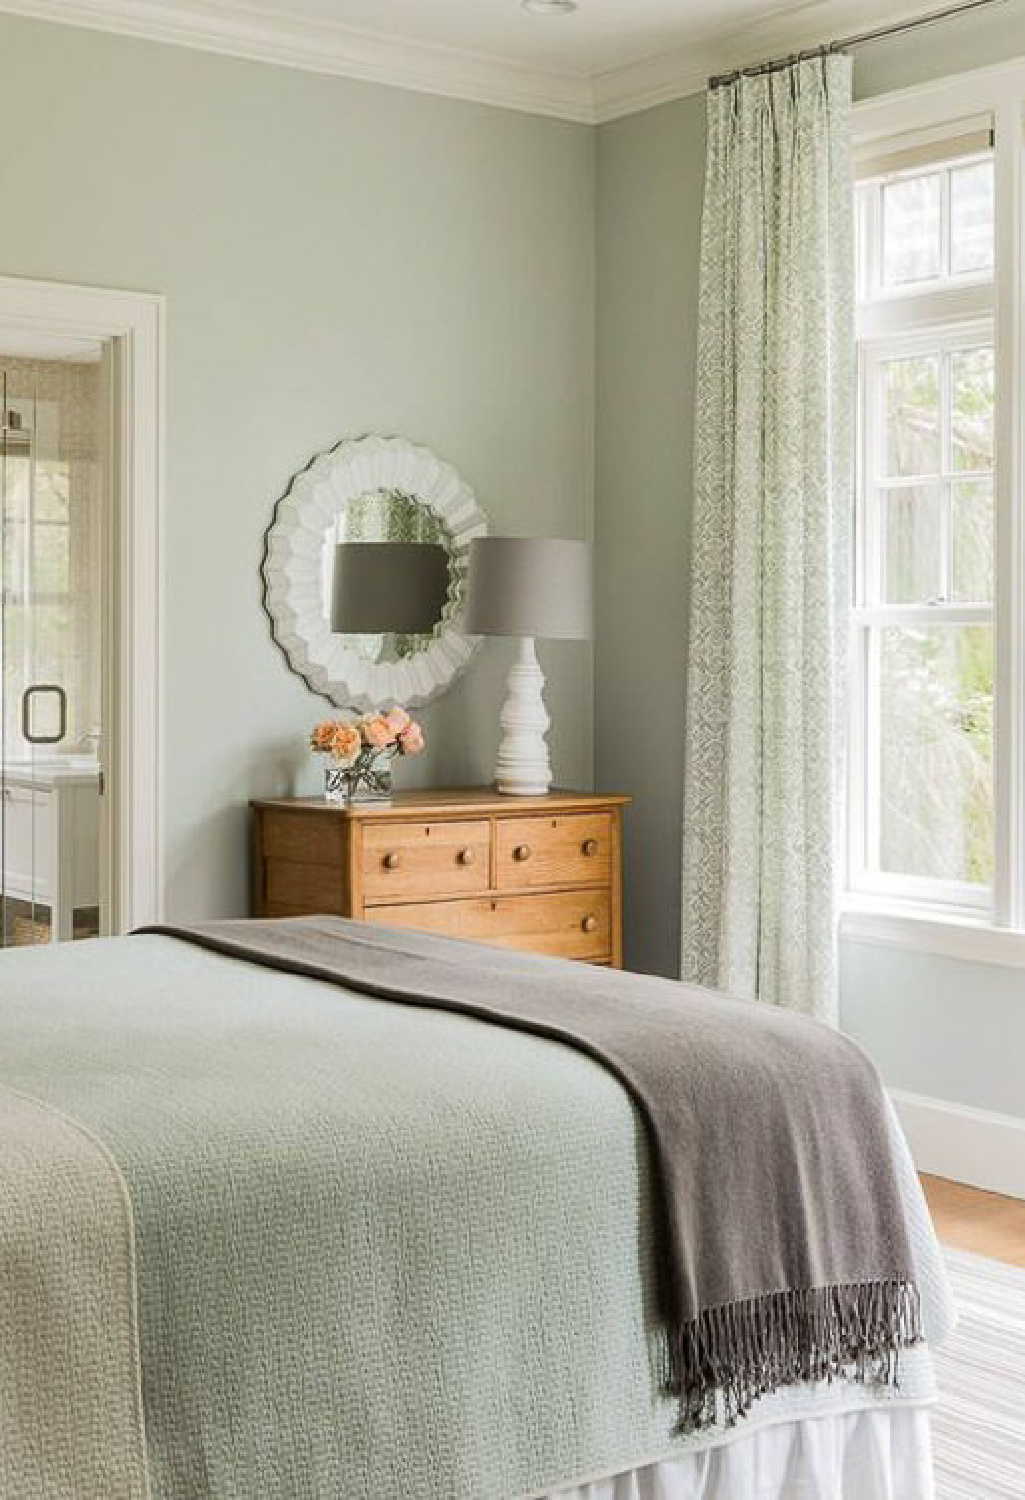 Benjamin Moore Quiet Moments paint color on walls of a lovely traditional cottage style bedroom - Houzz via Postcardsfromtheridge. #quietmoments #paintcolor #pleblue